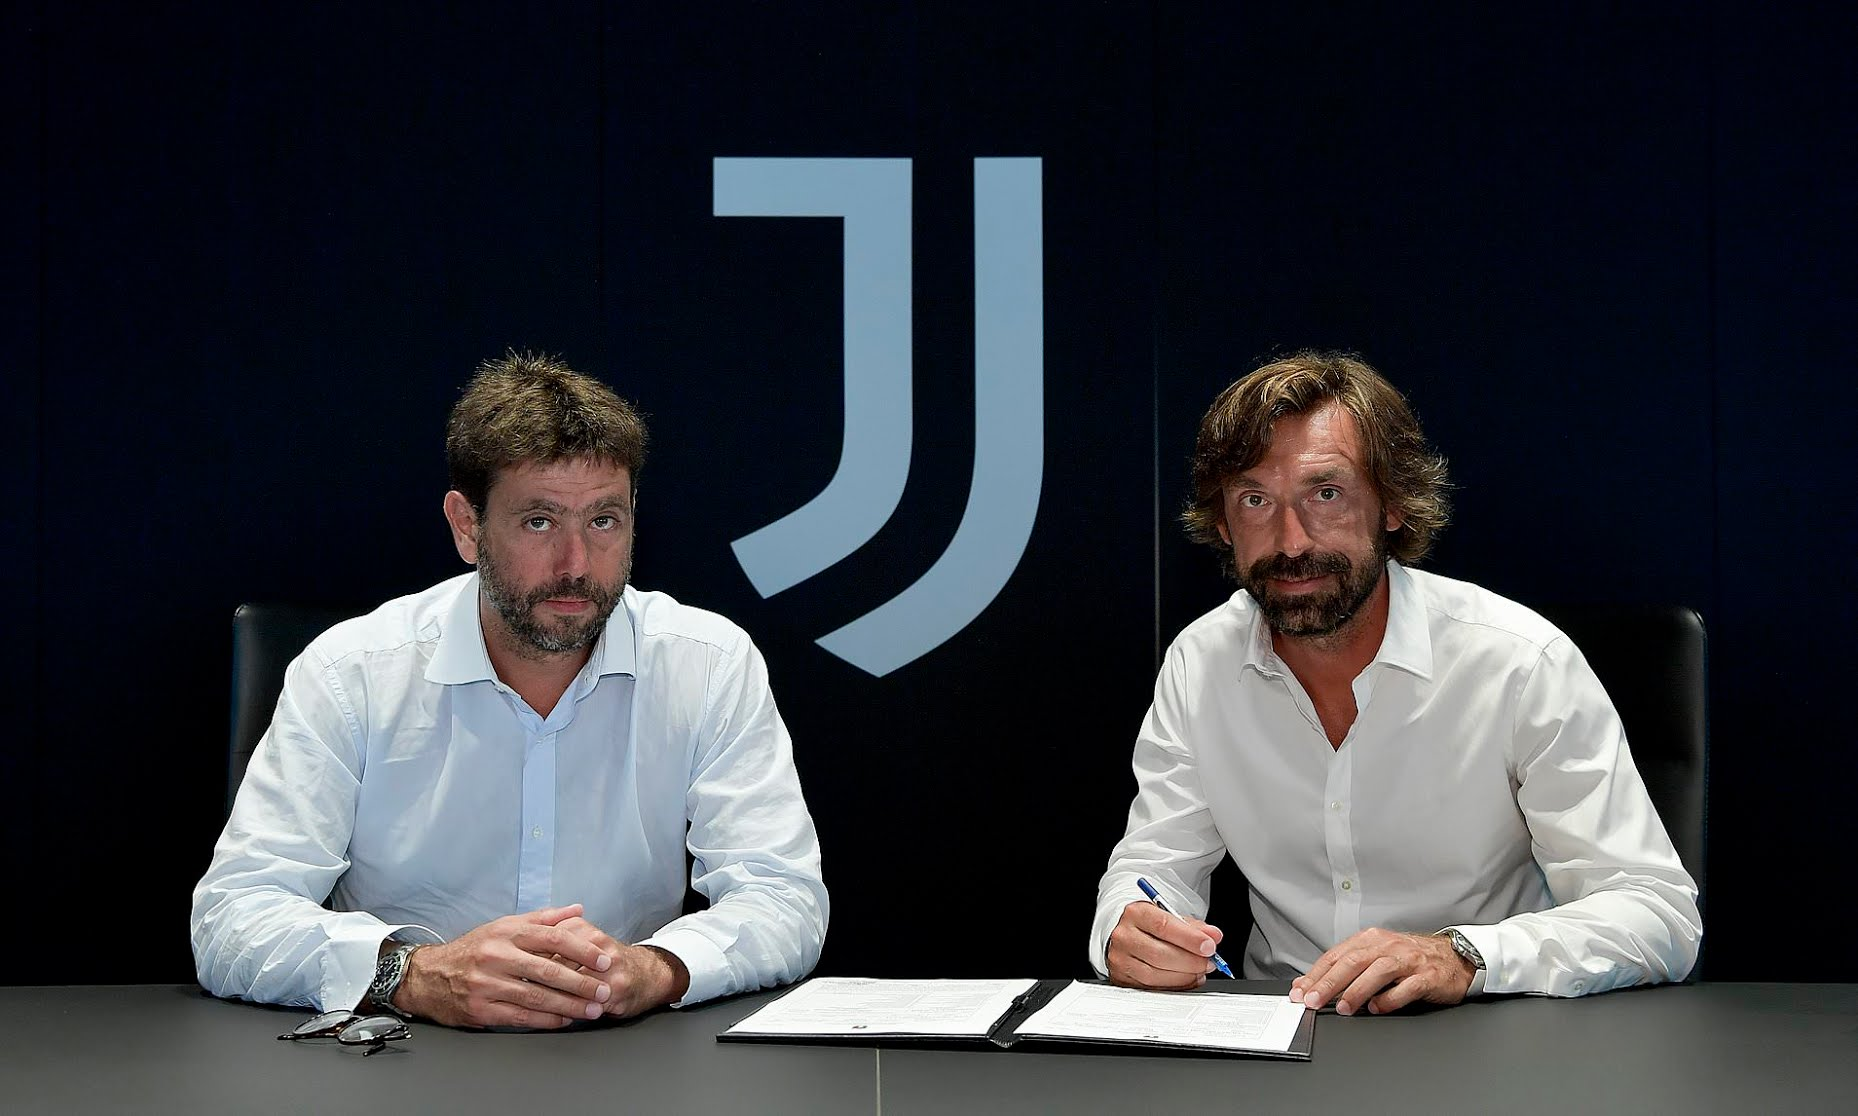 Andrea Pirlo named new Juventus coach